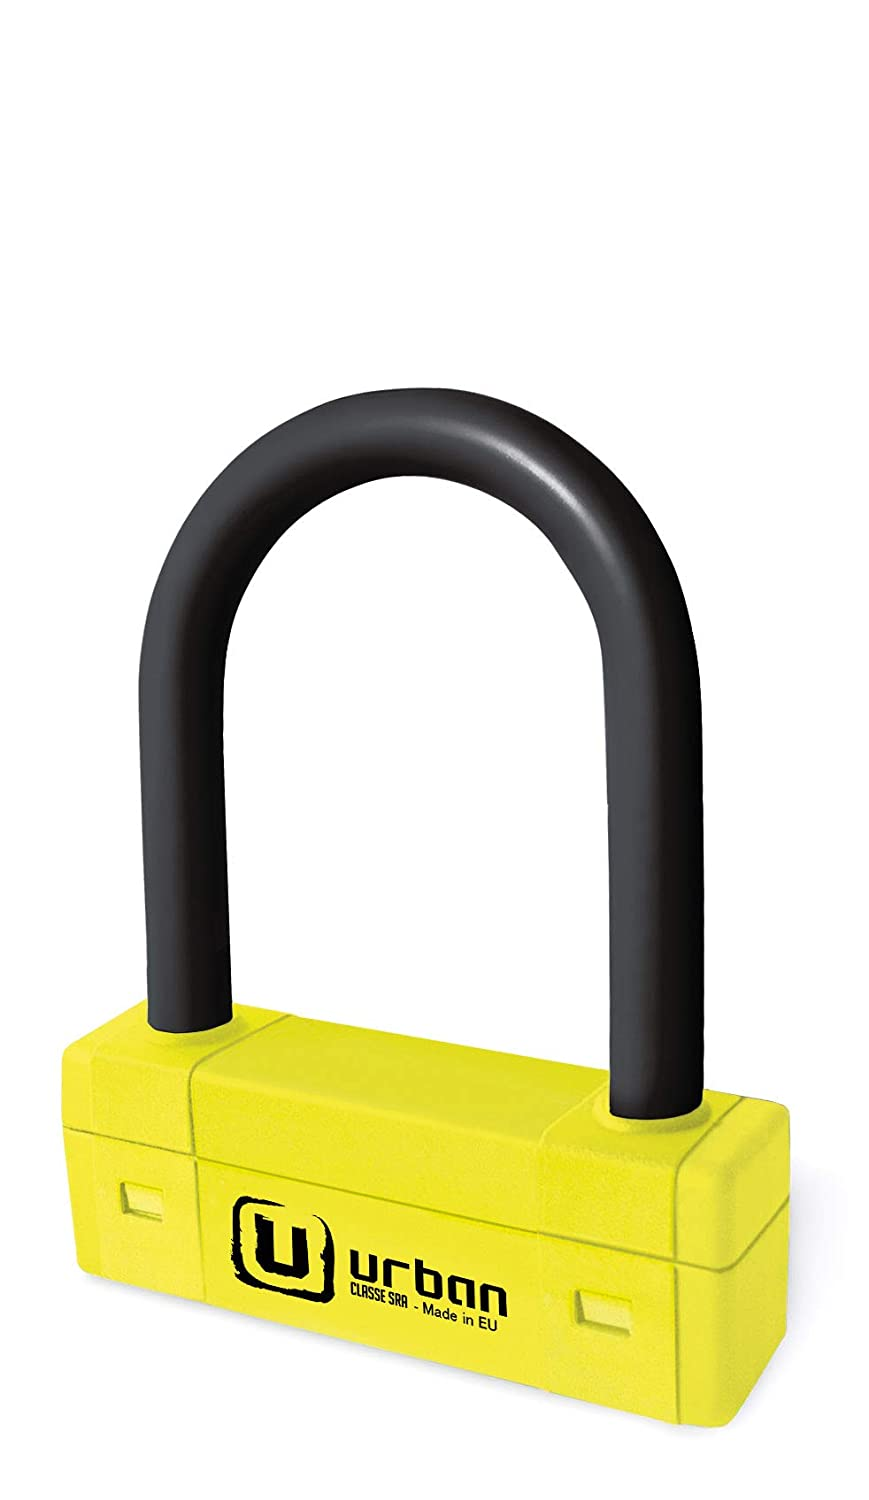 Urban security URBAN - Antivol U 85x120mm ø18mm Jaune - Homologué SRA et NF-FFMC 8423885871206